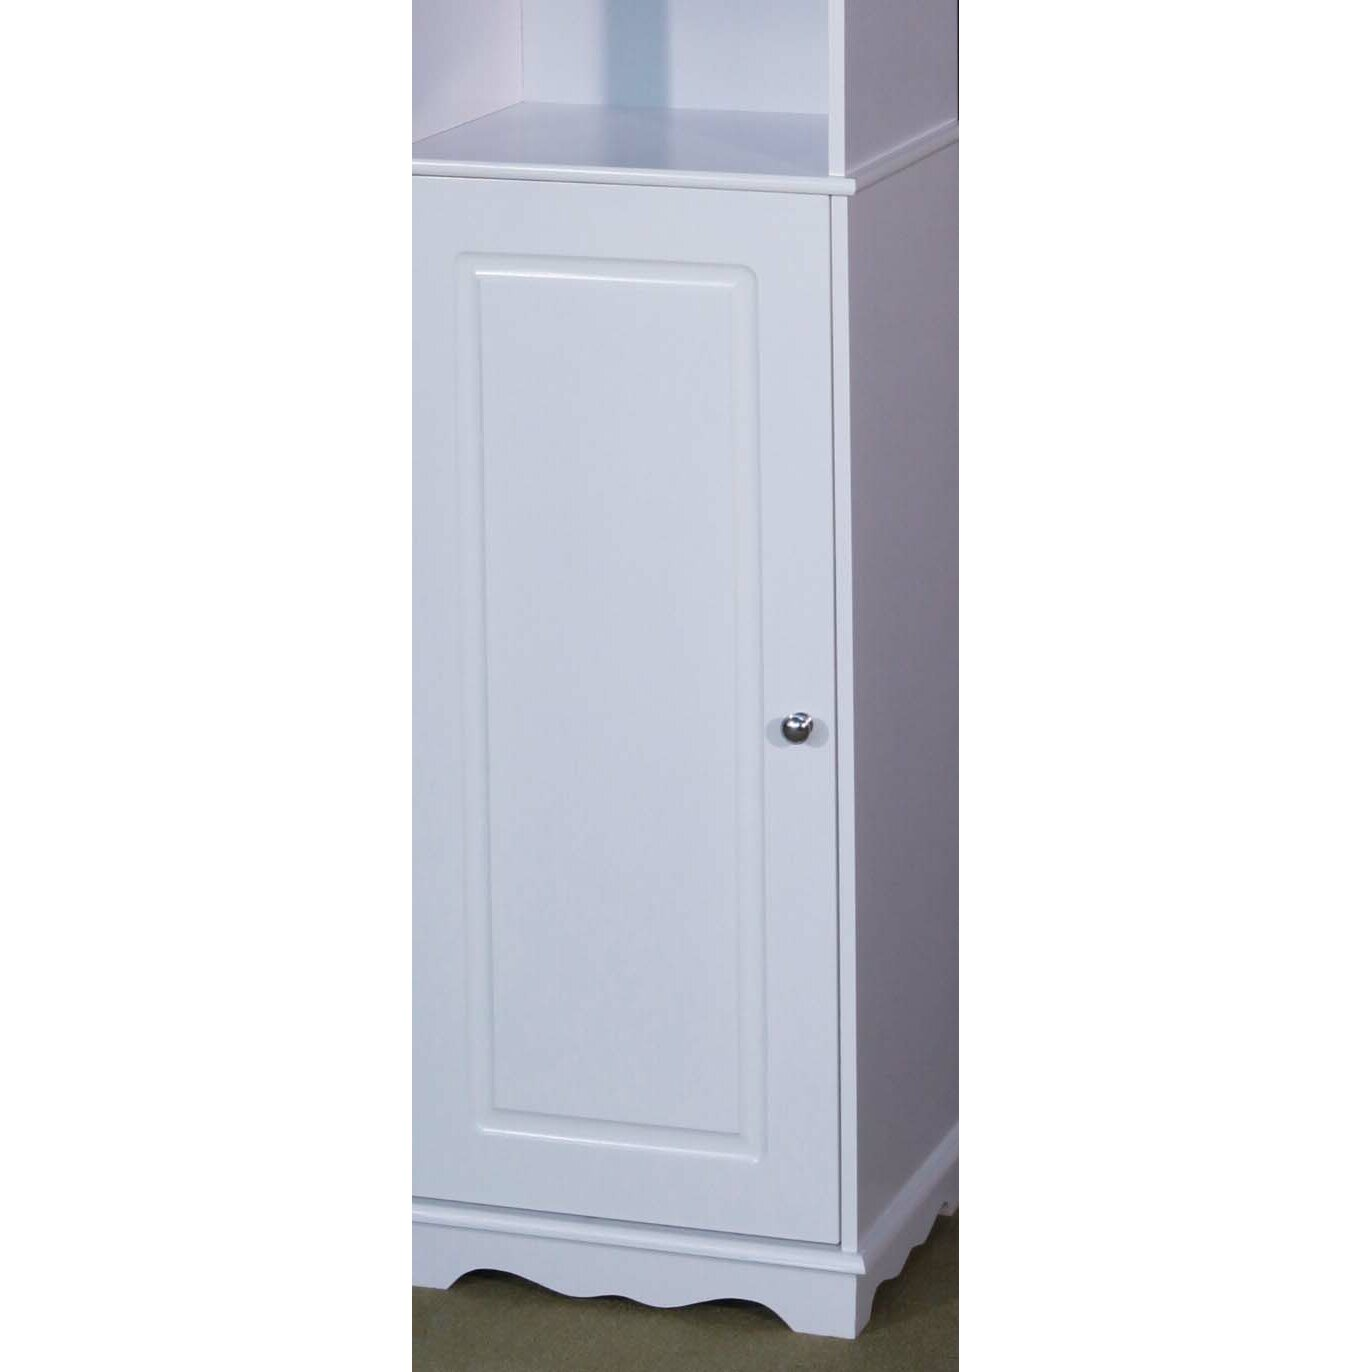 kandos 40 x free standing tall bathroom cabinet wayfair uk